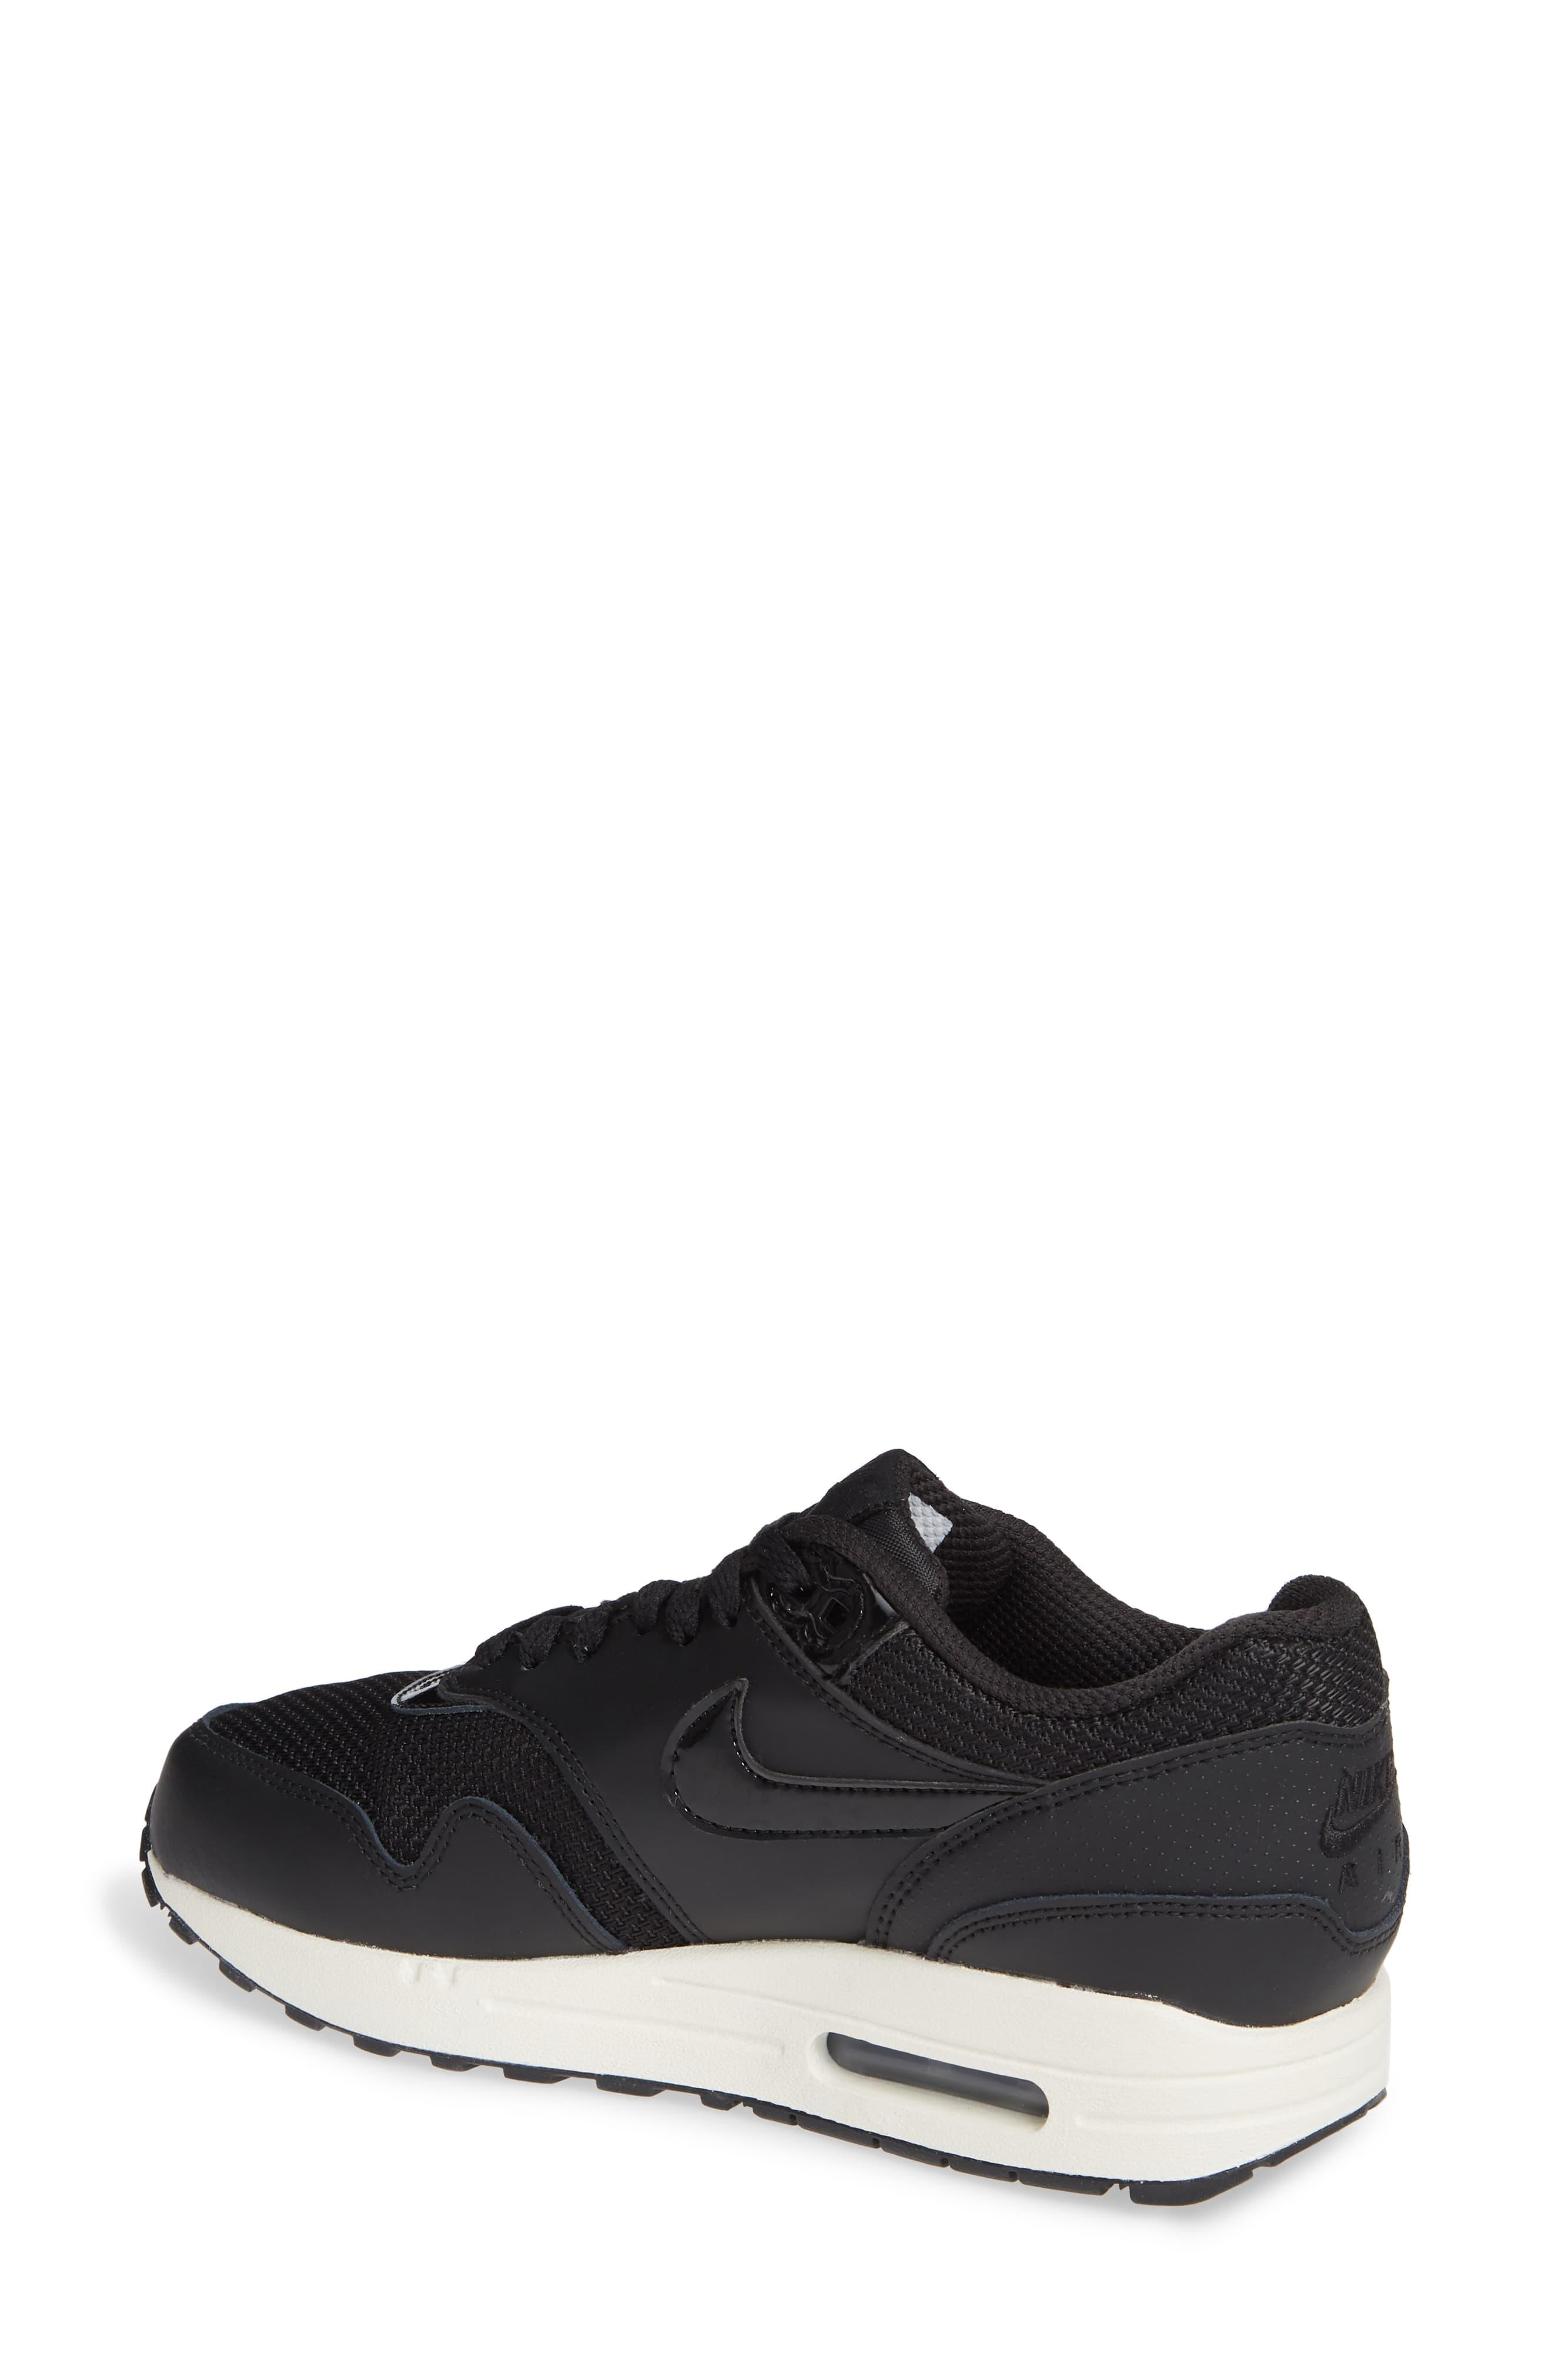 on sale 04bd3 984e0 Nike. Women s Black Air Max 1 Nd Sneaker